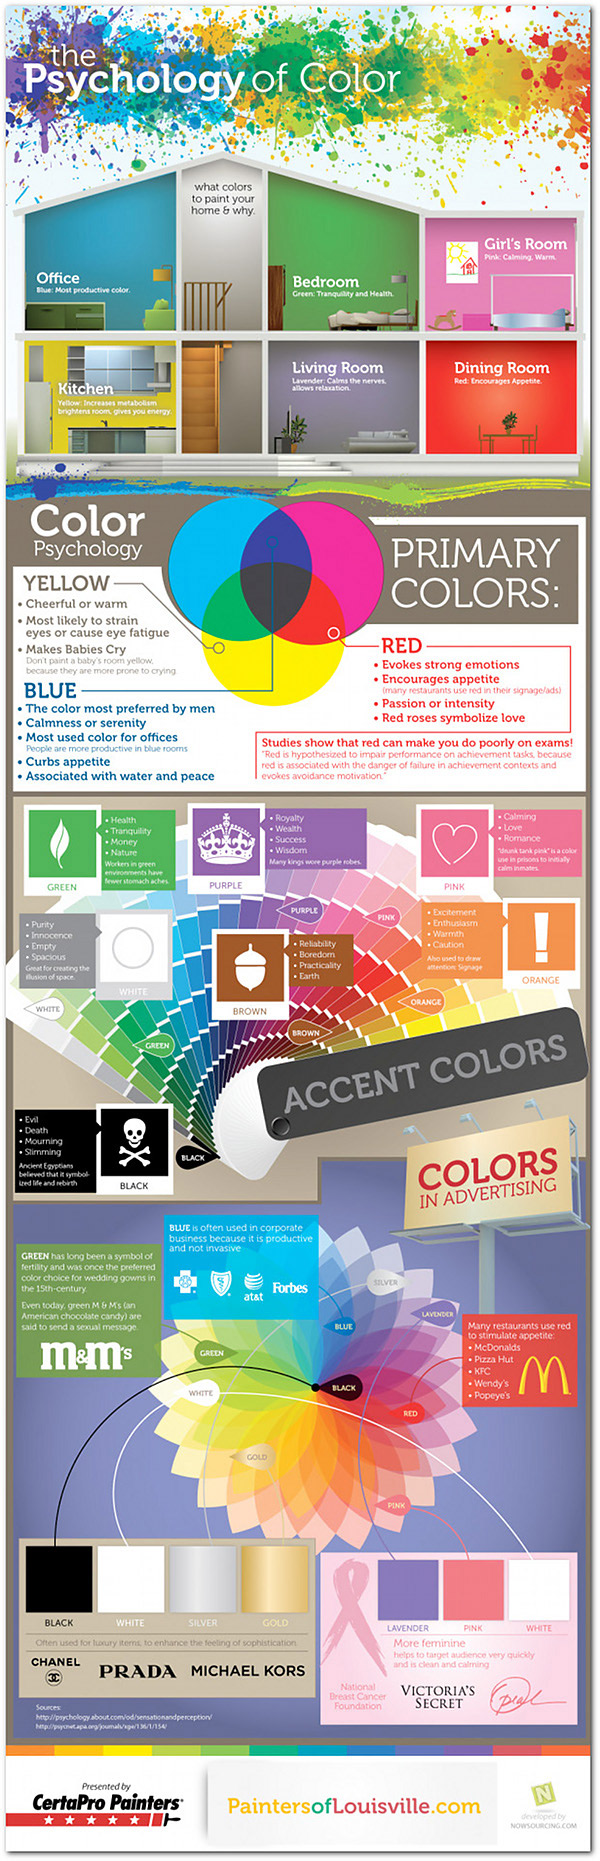 psychology-color-infograhpic 2.jpg